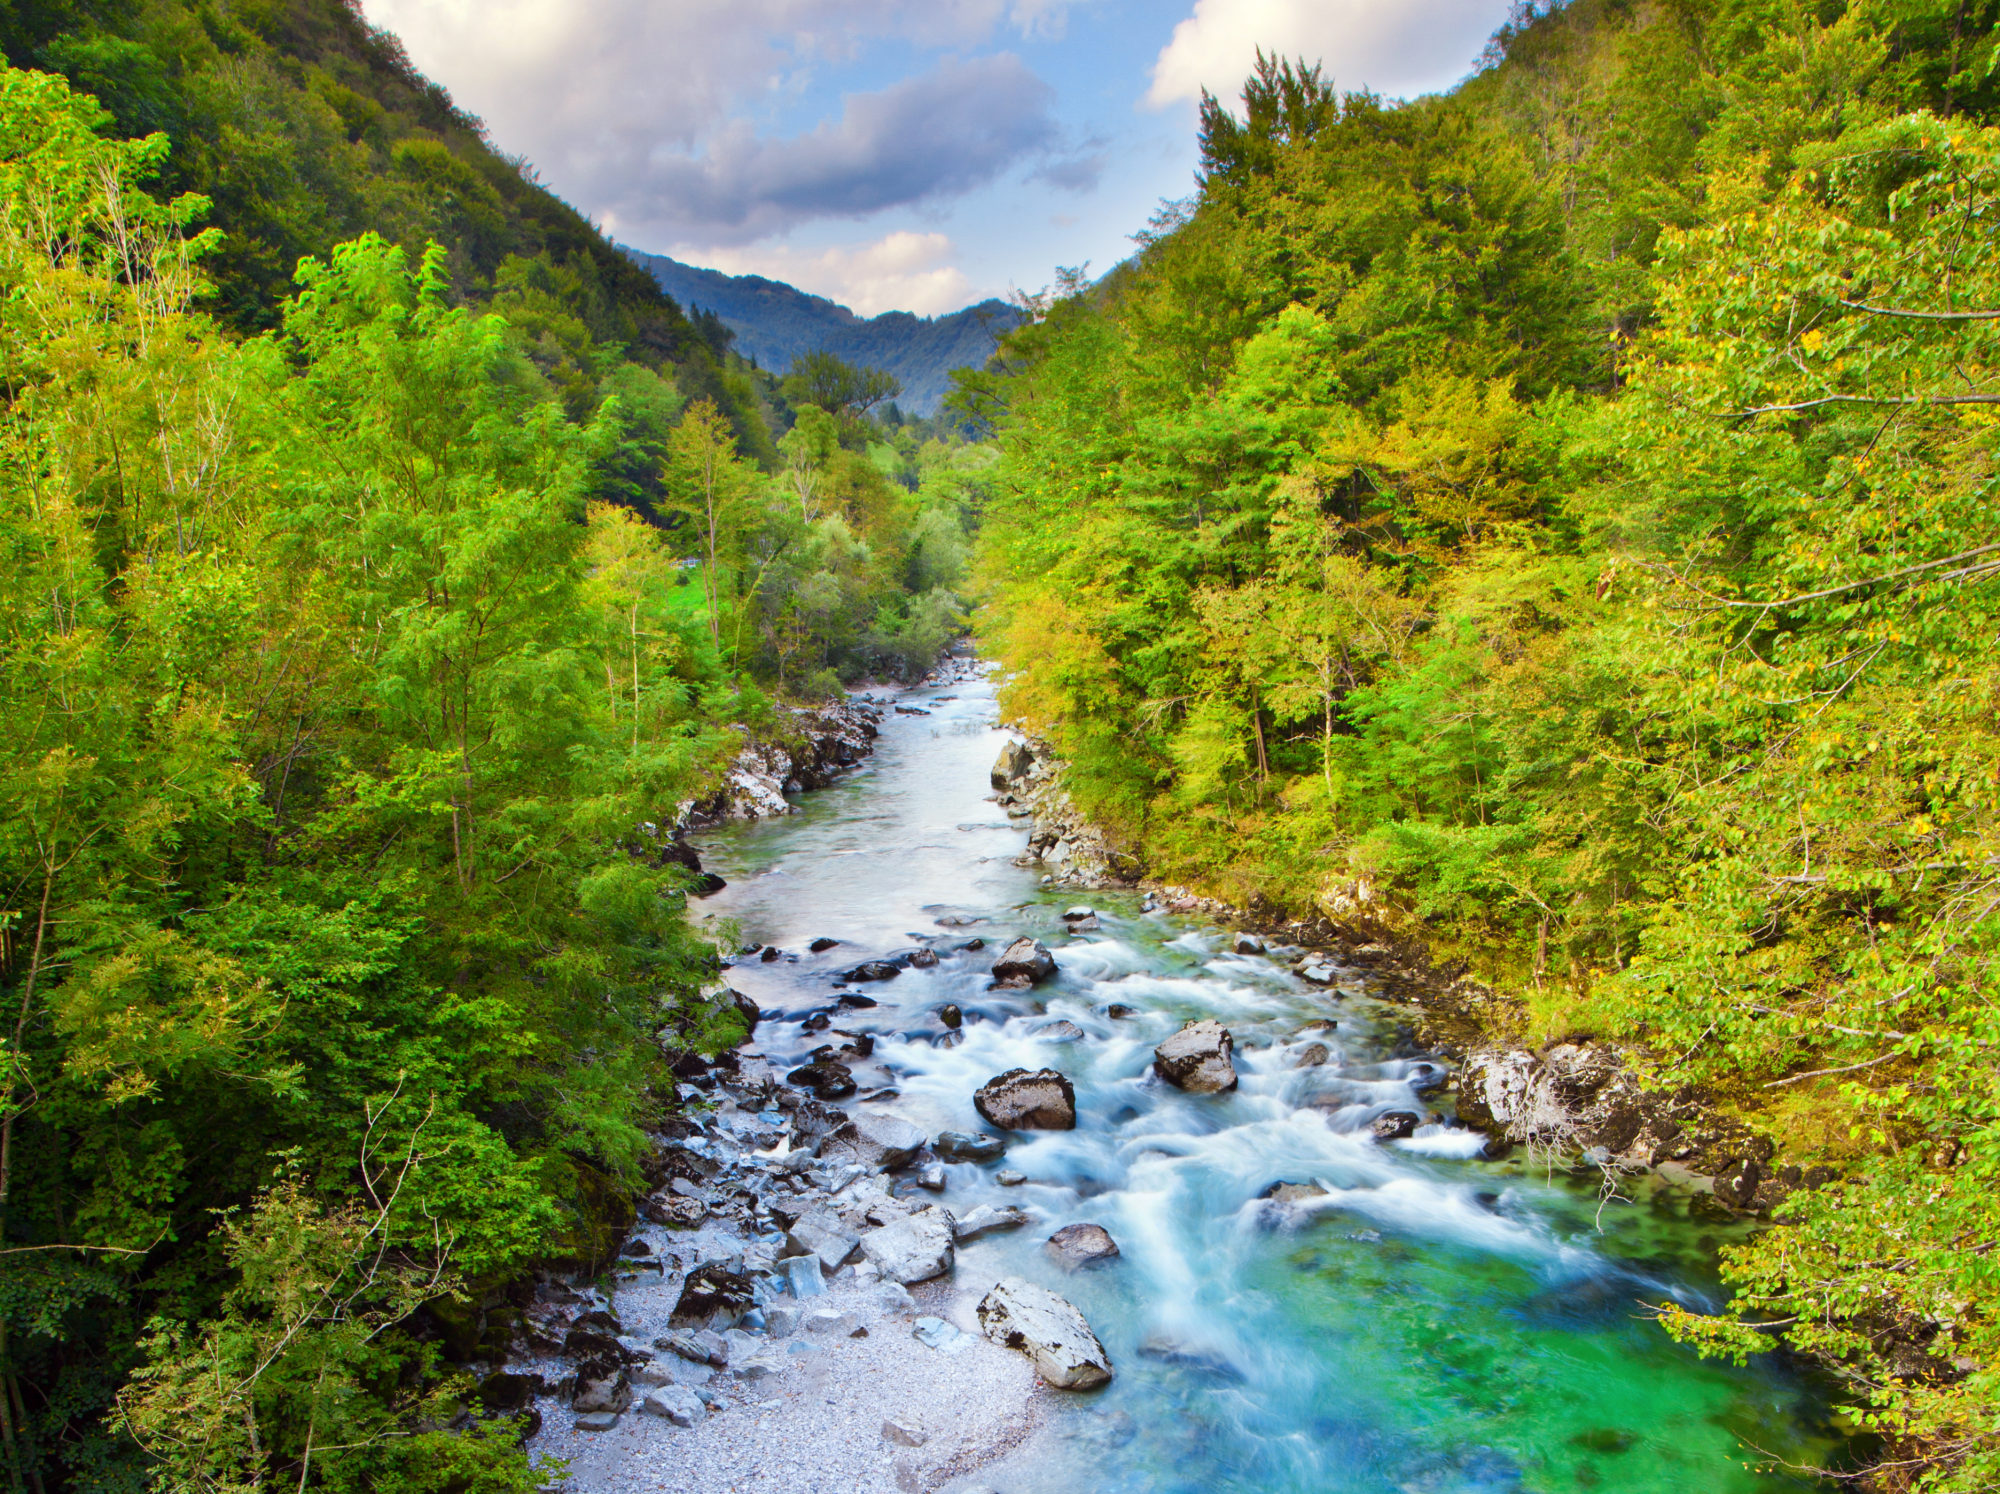 idrijca-river-spring - TRAVELSLOVENIA.ORG – All You Need To Know To Visit Slovenia